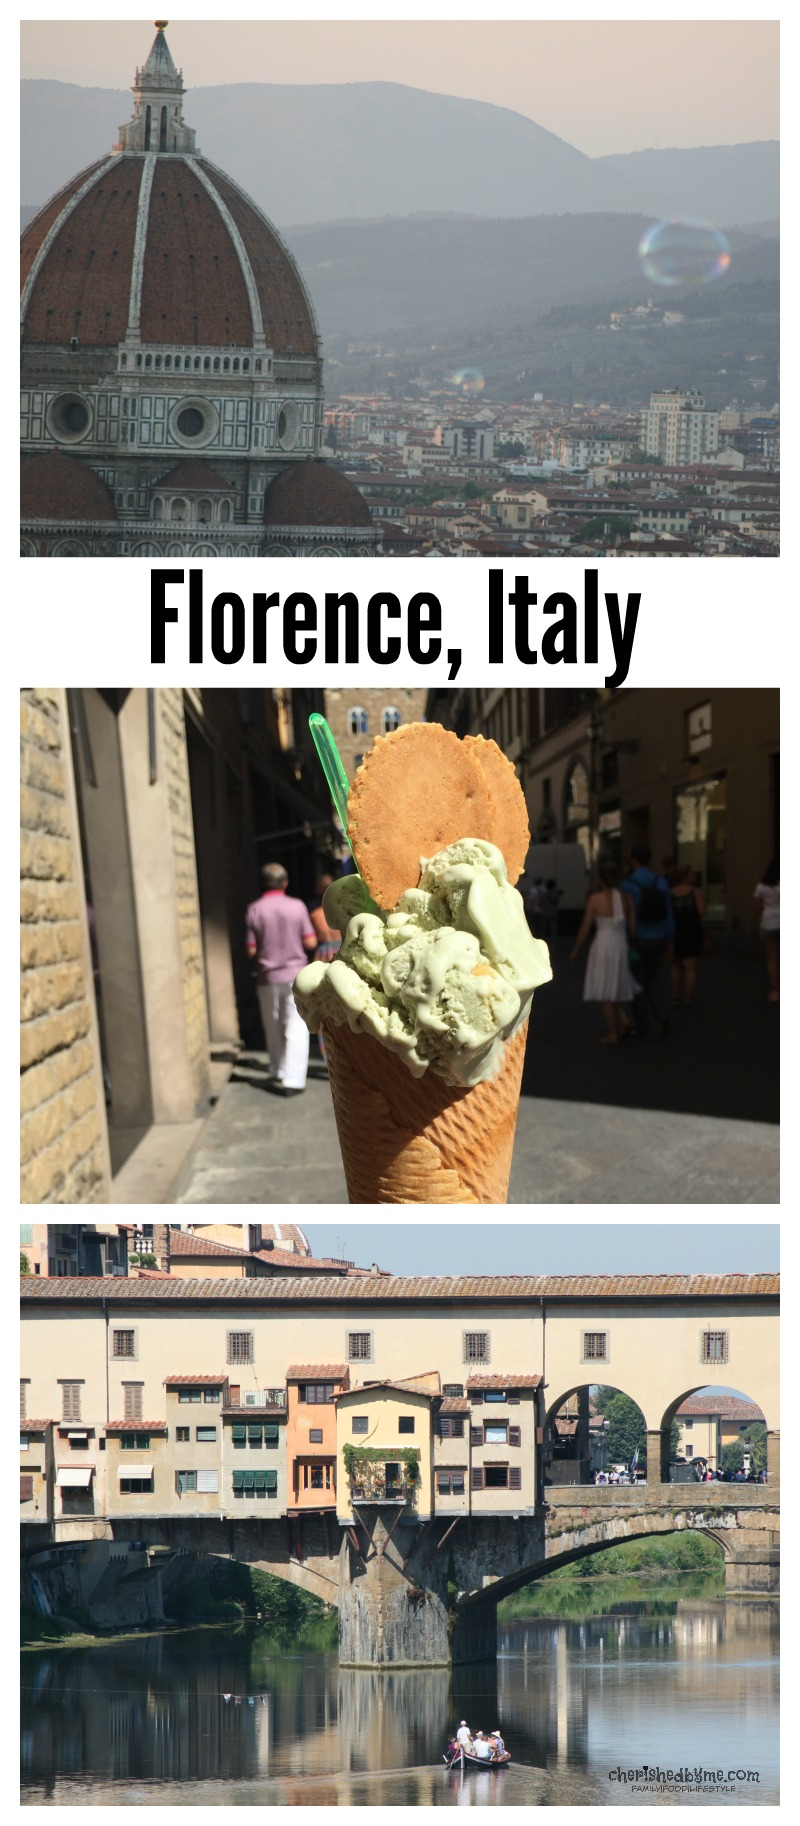 Top tips to help you make the most of your time in Florence, Italy